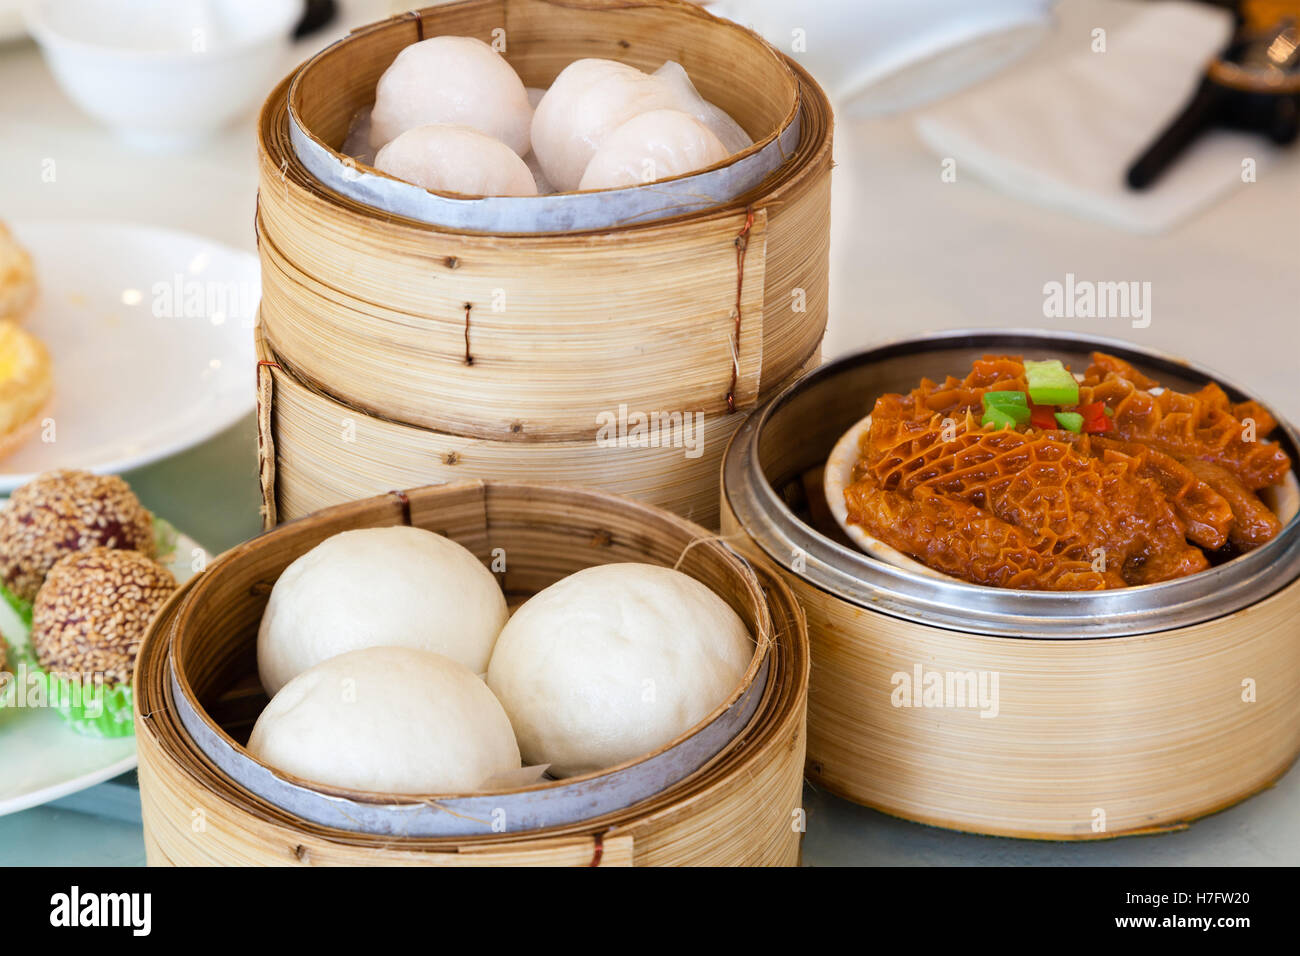 steamed chinese dim sum served in bamboo steamers including buns